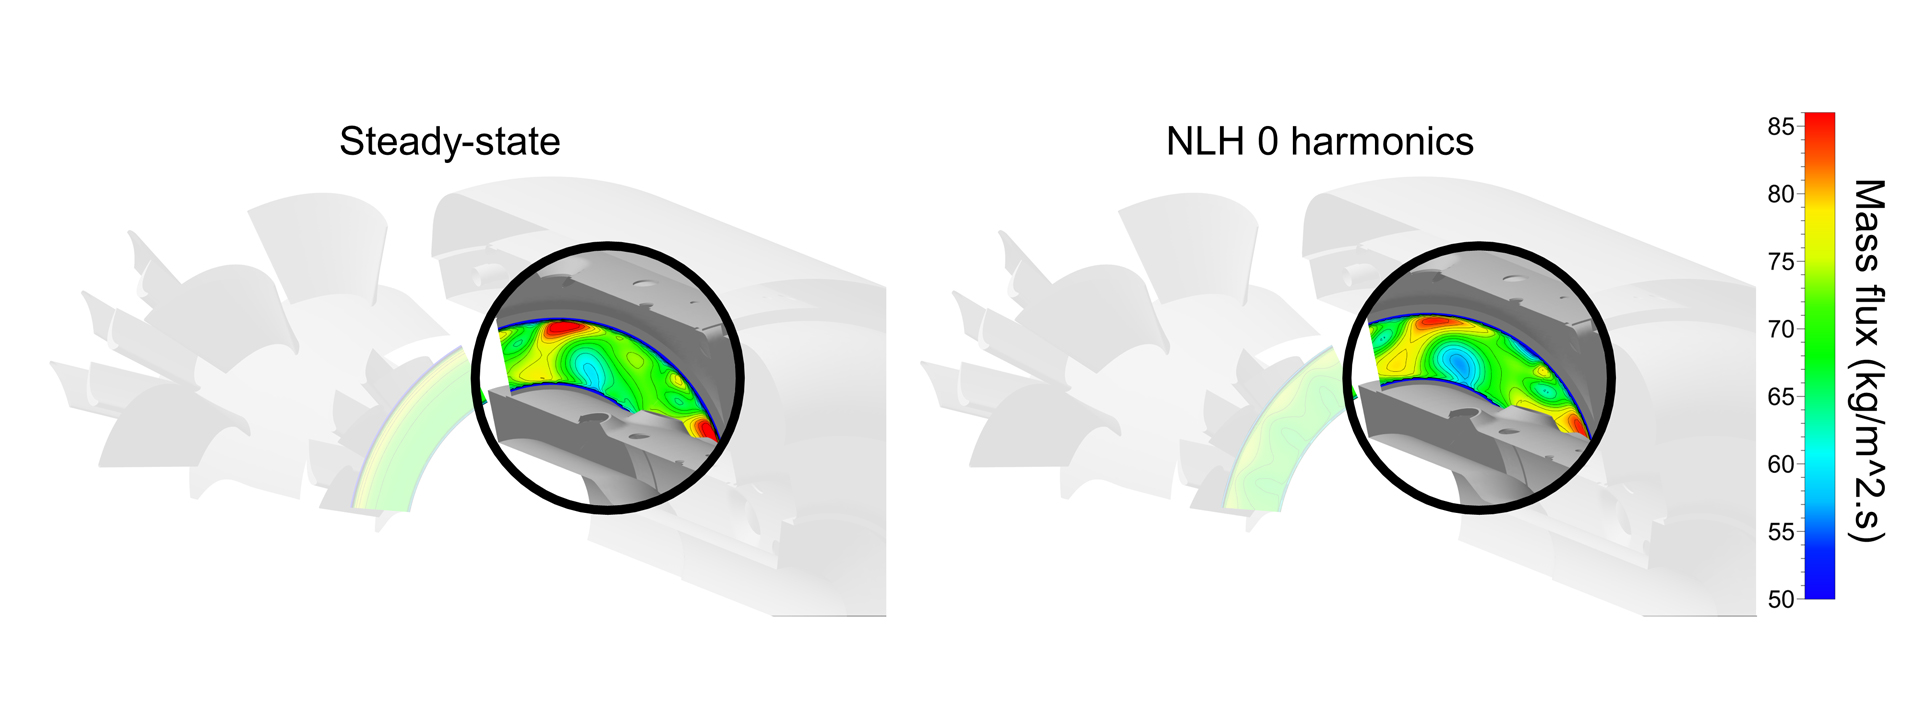 FIGURE 6: Mass flux at the outlet of the combustion chamber and at the inlet of the HPT for the steady-state (left) and NLH 0 harmonic (right) simulations.